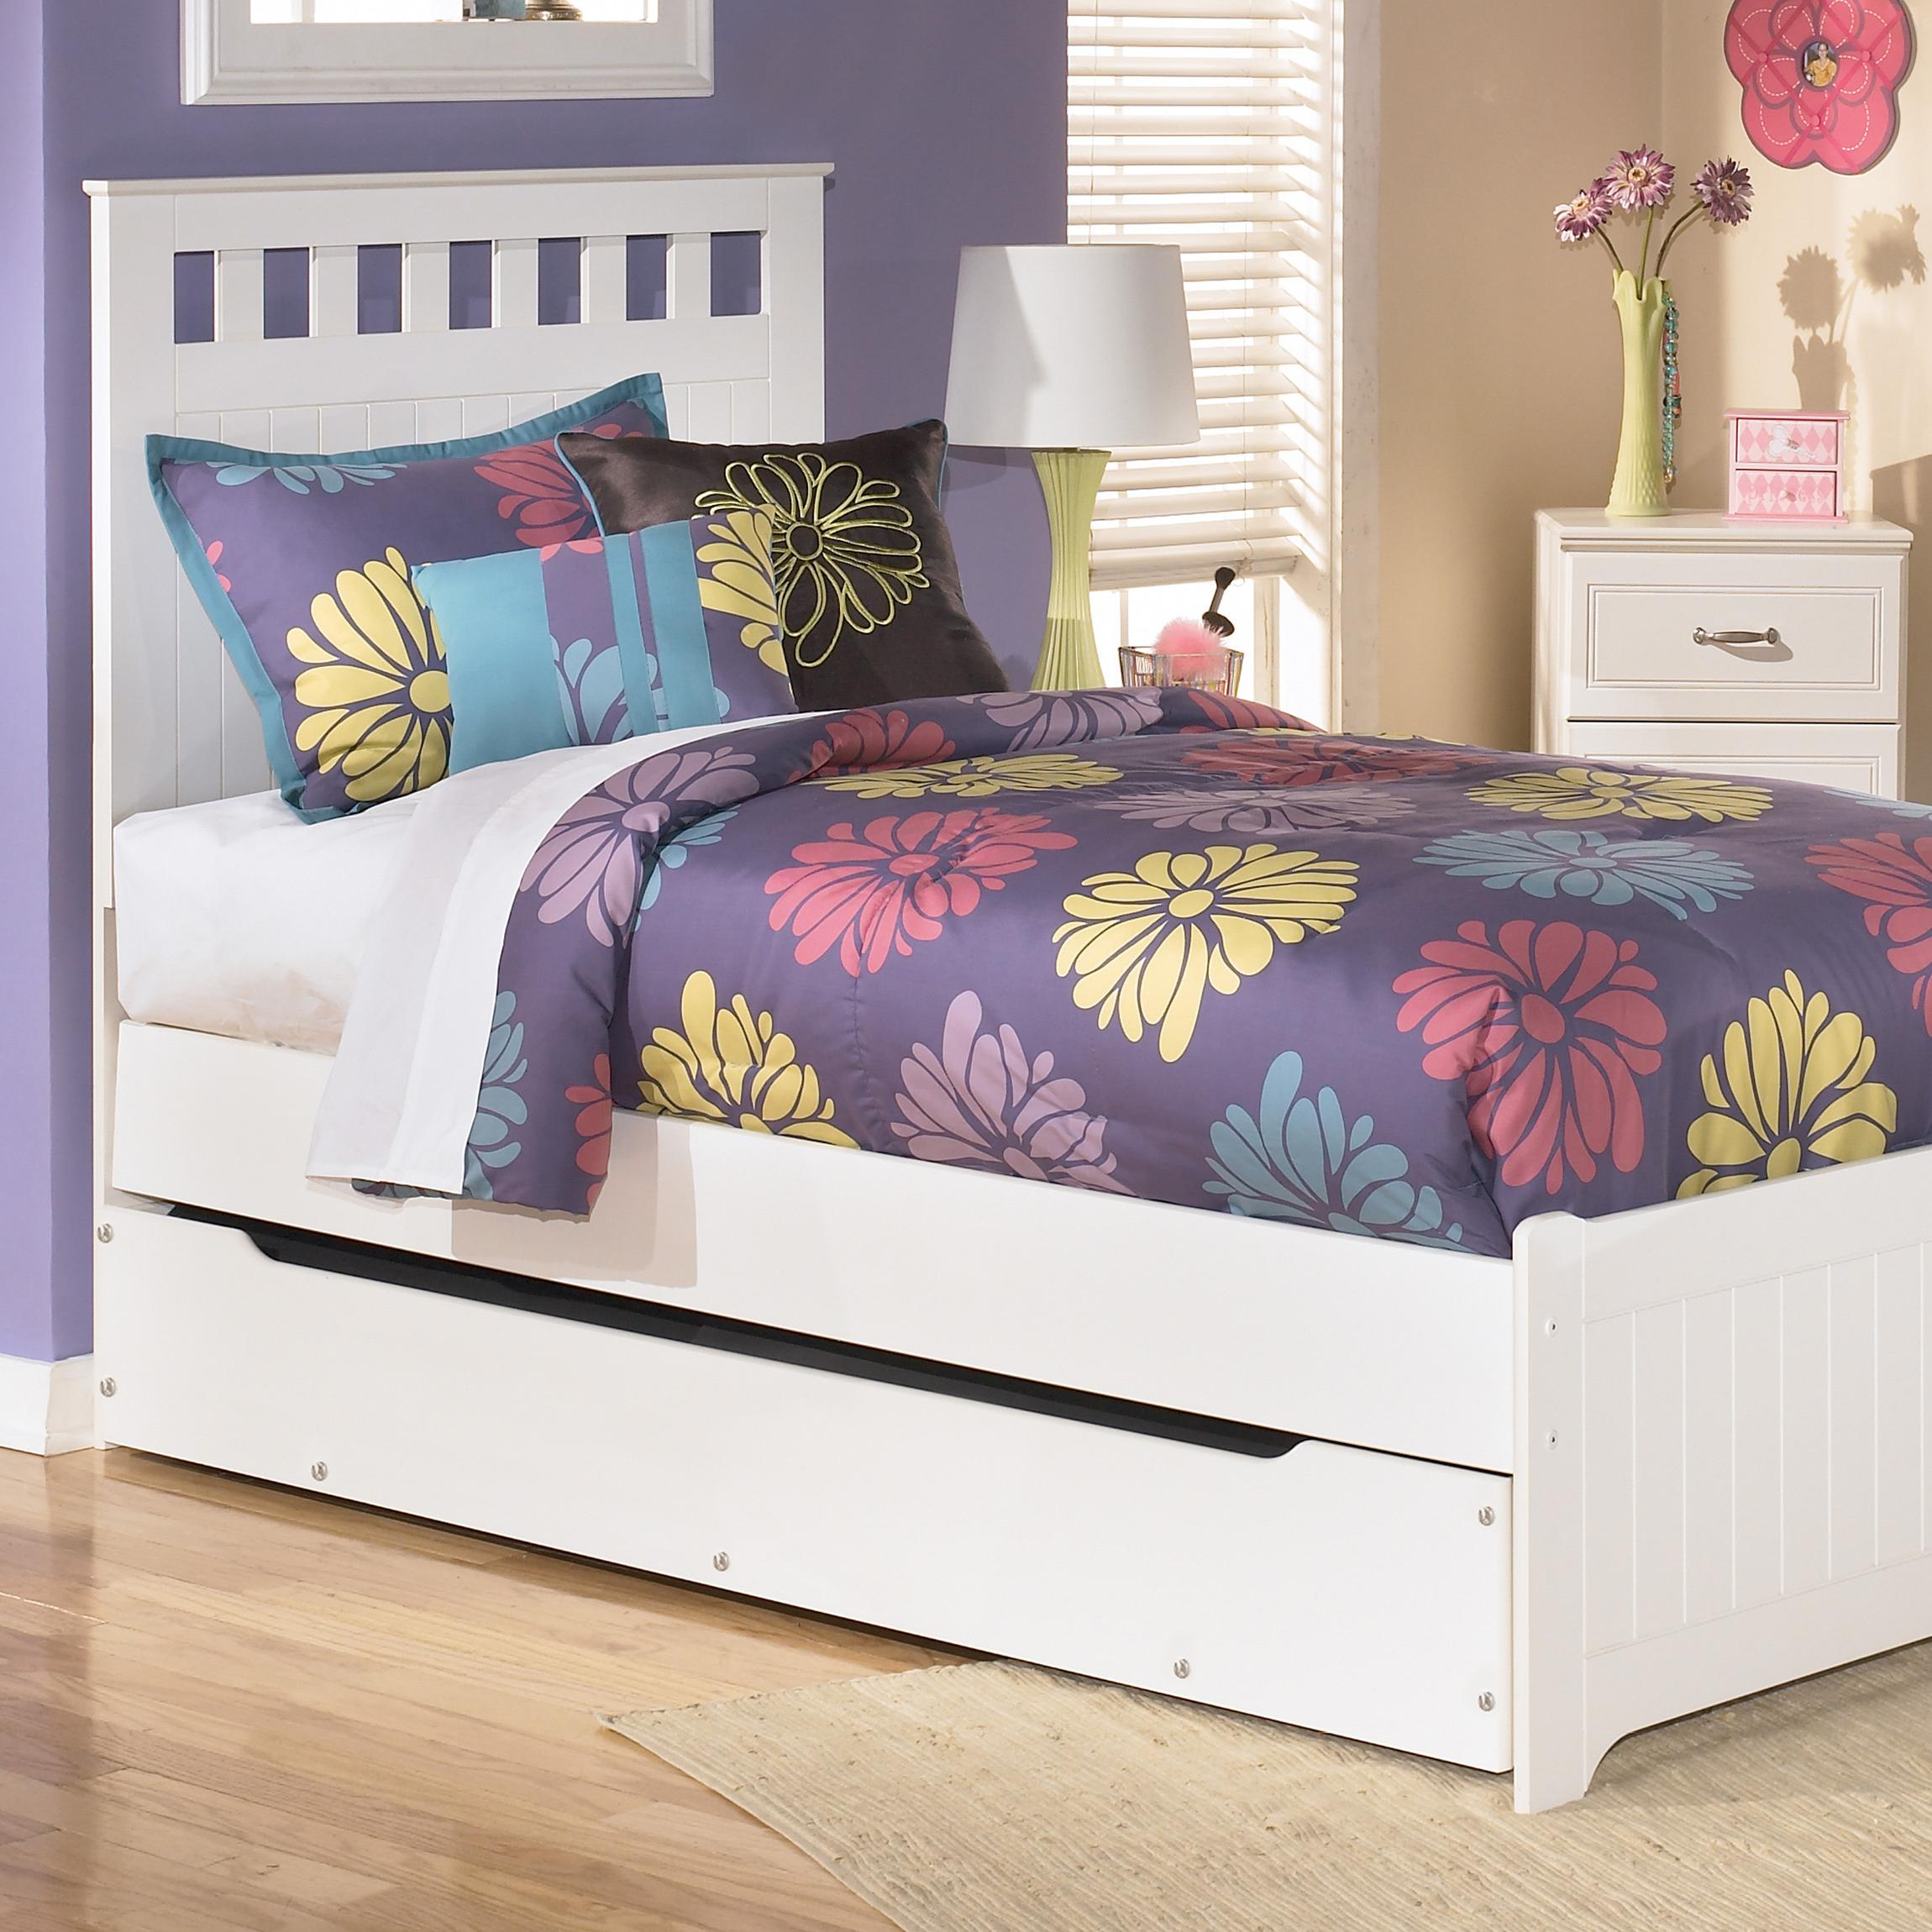 Signature Design by Ashley Lulu Trundle Under Bed Storage ONLY - Item Number: B102-60